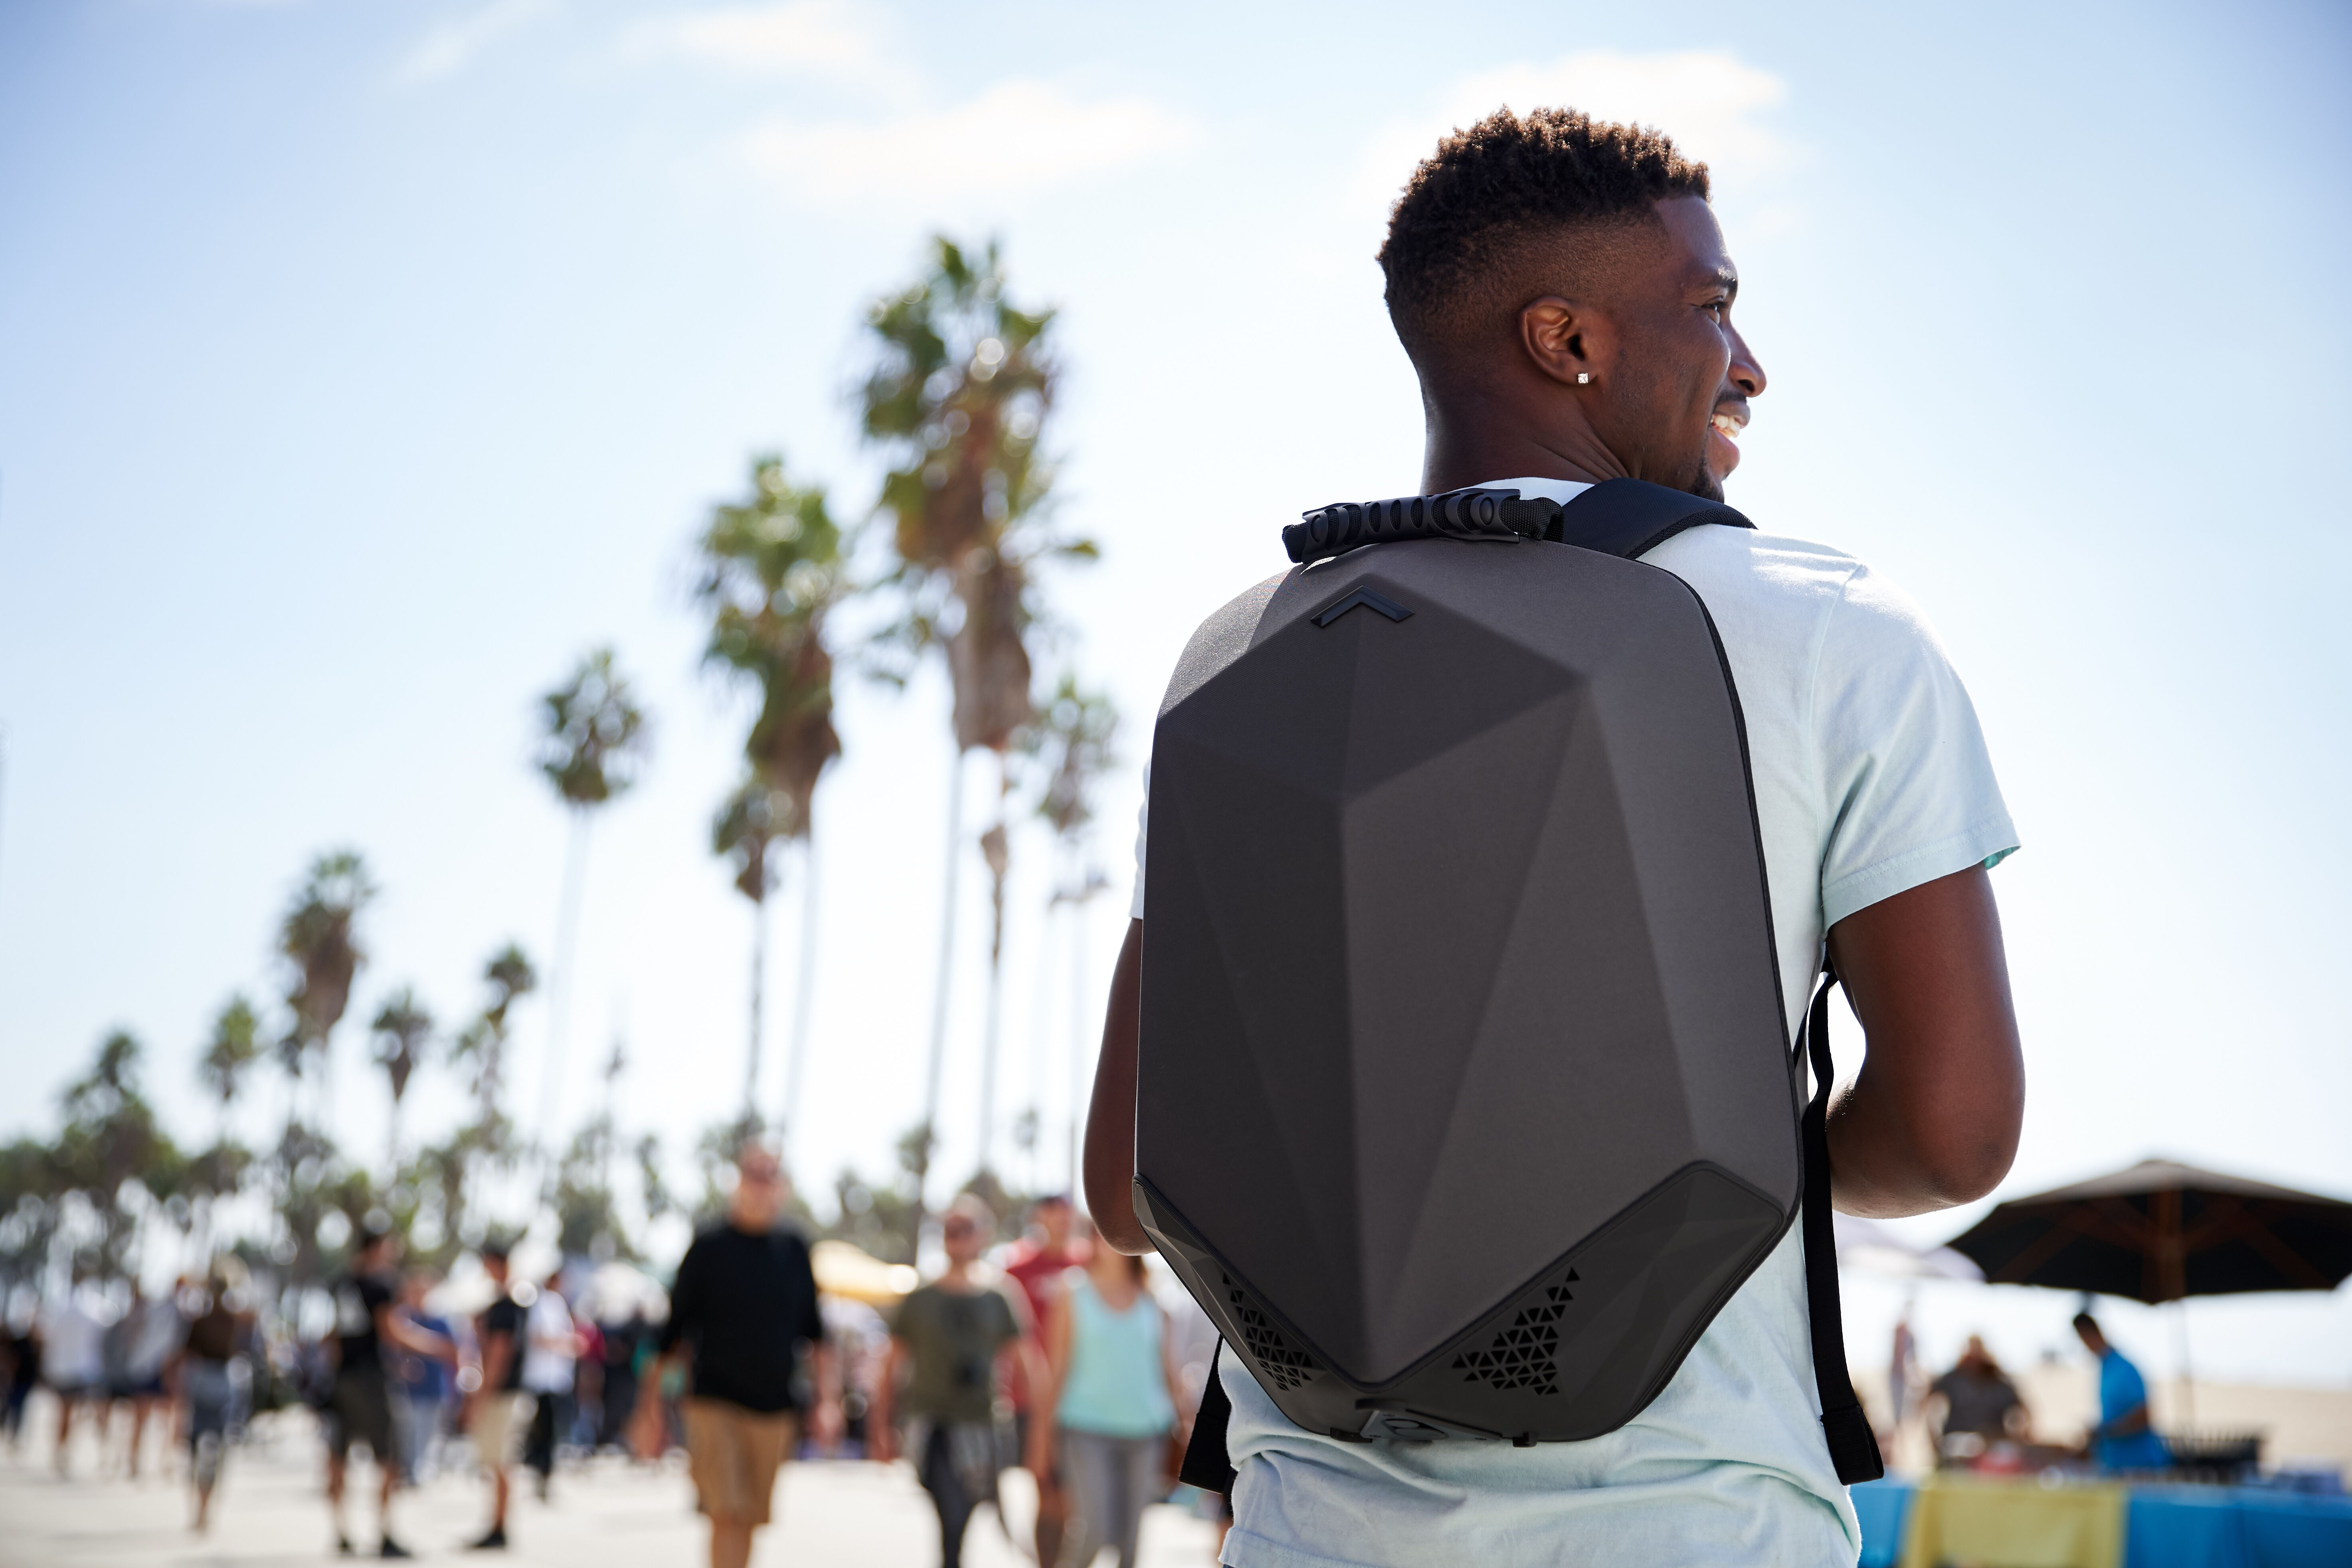 stealth speaker backpack palm trees